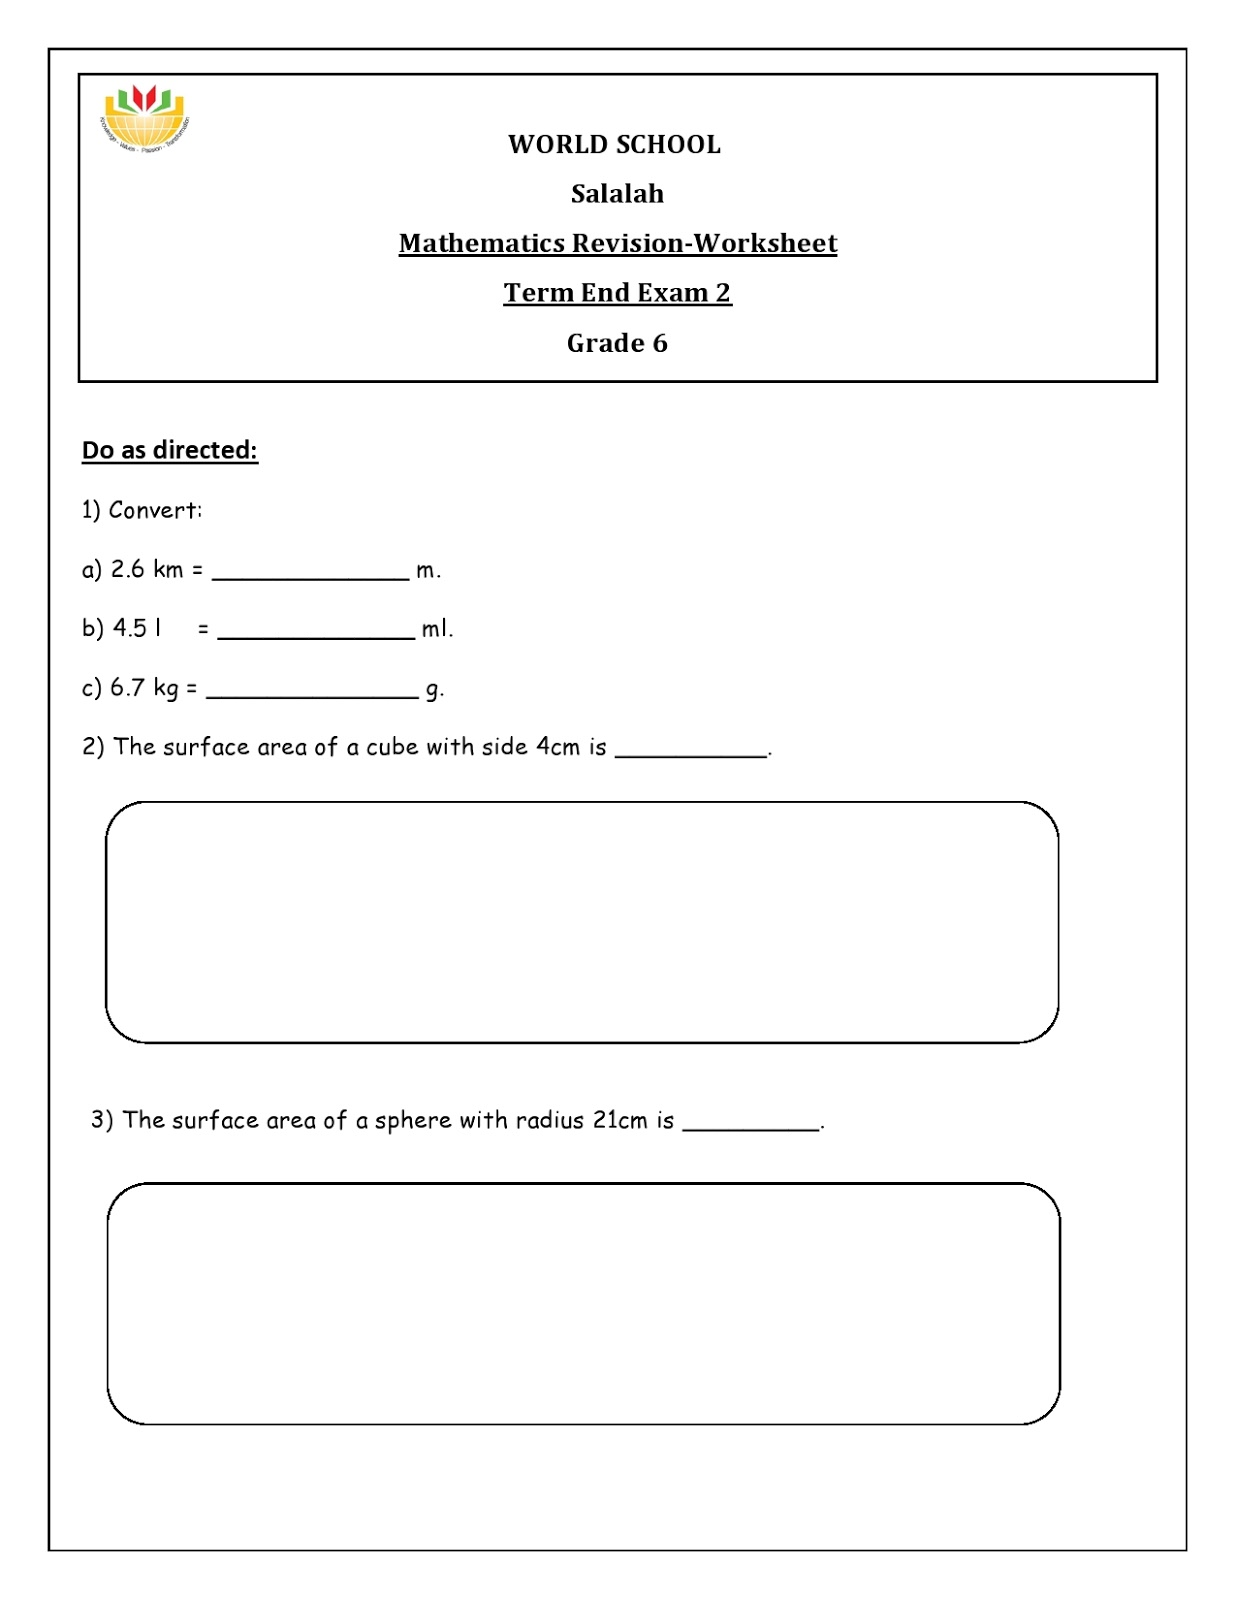 small resolution of WORLD SCHOOL OMAN: Revision Worksheets for Grade 6 as on 09-05-2019